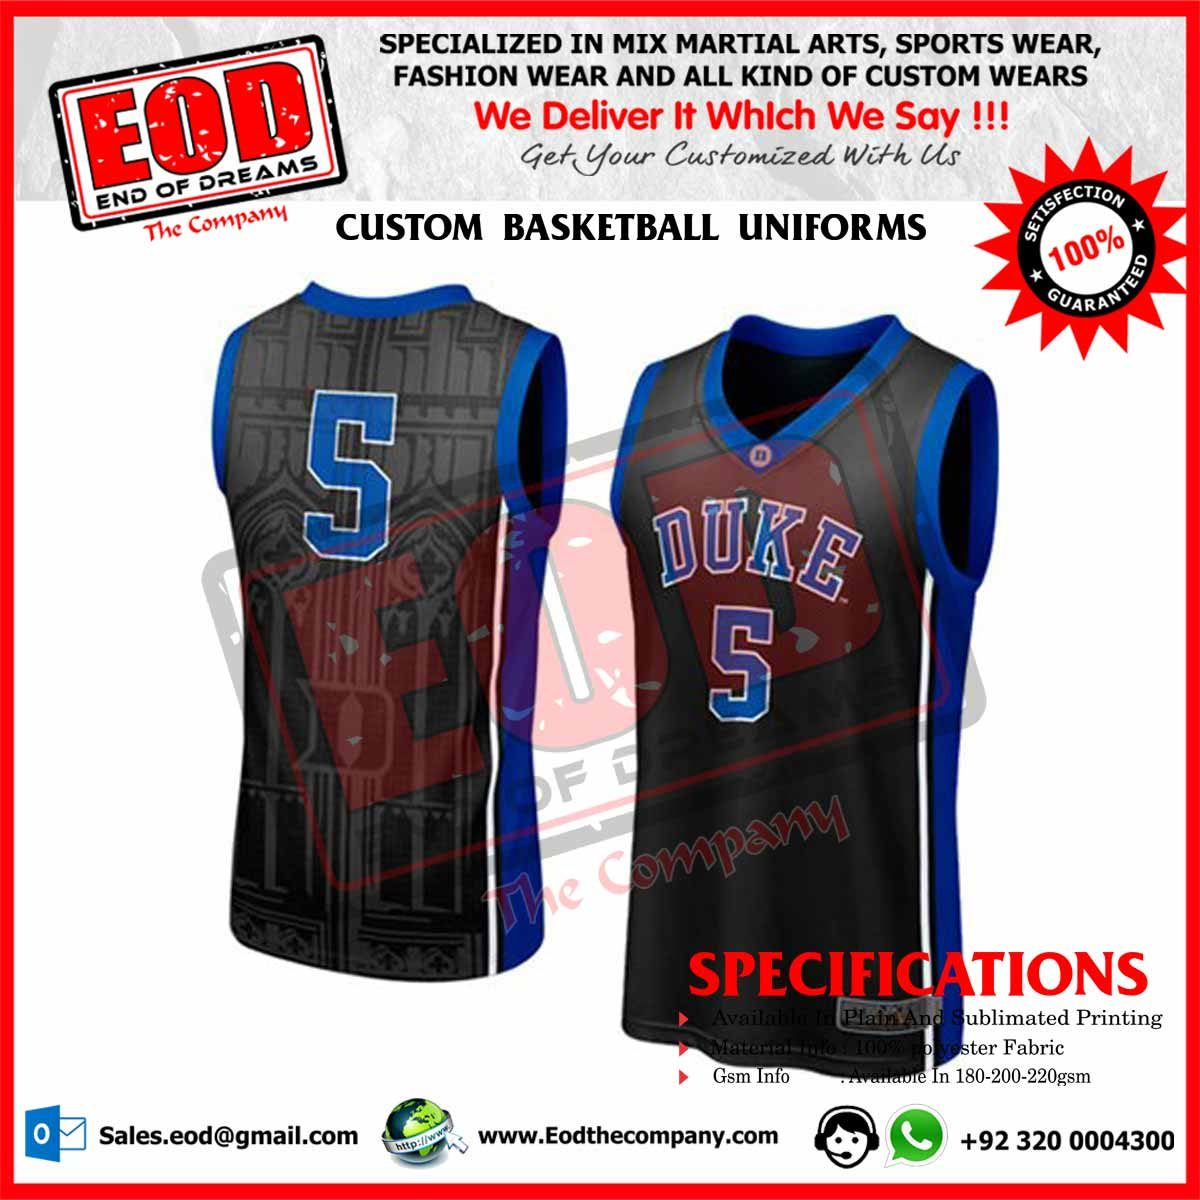 3973d7a5887 Custom Basketball Uniforms - EOD The Company